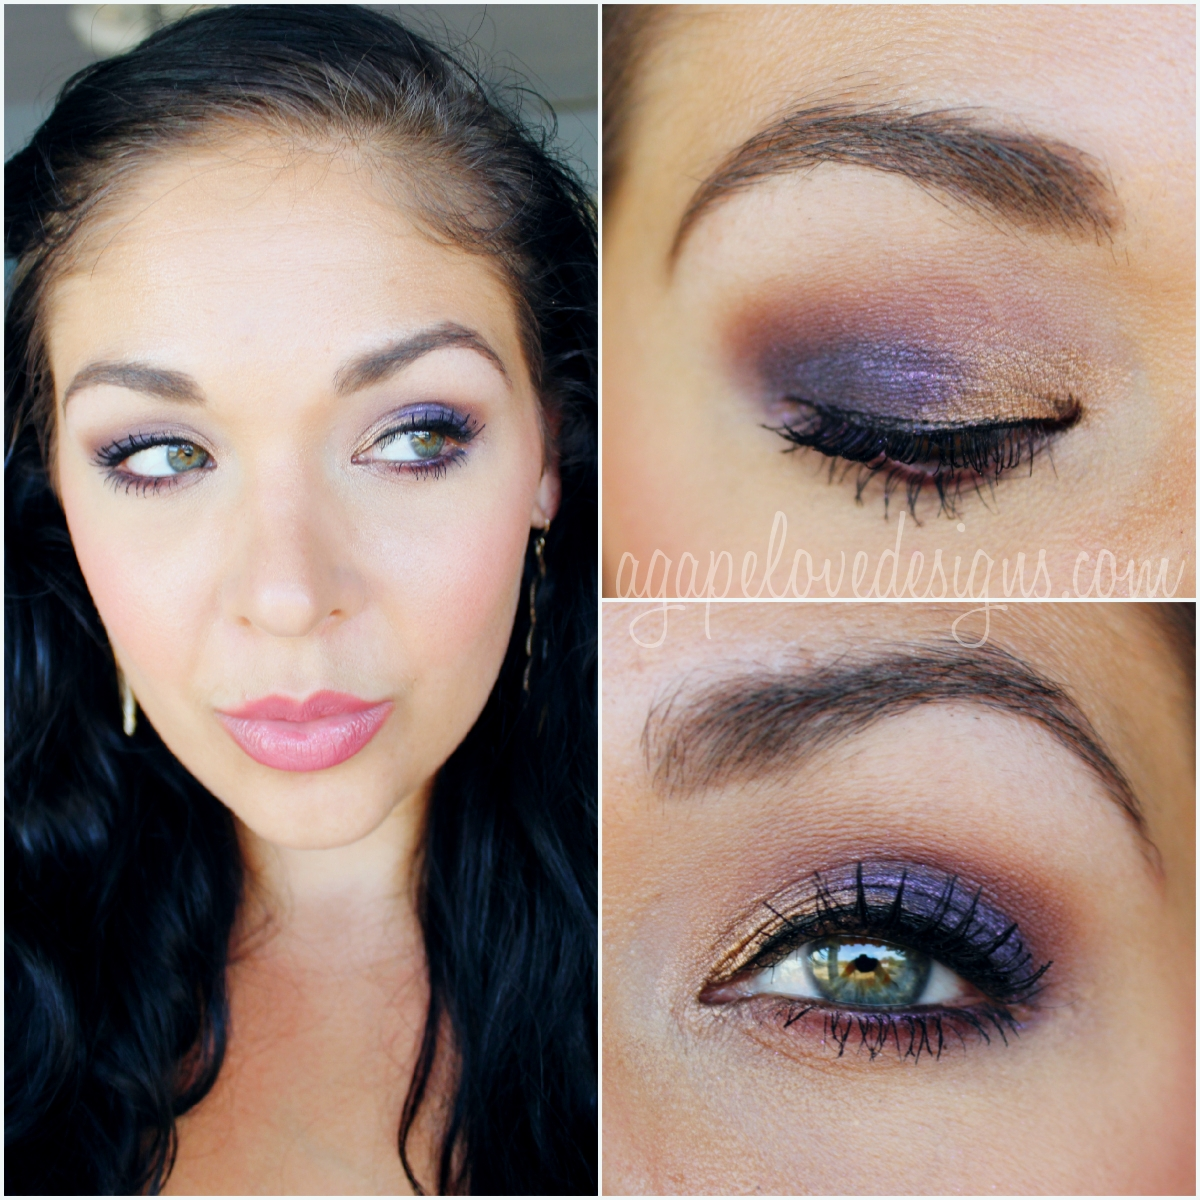 Agape love designs get the look too faced chocolate bar palette agape love designs get the look too faced chocolate bar palette collab video baditri Images